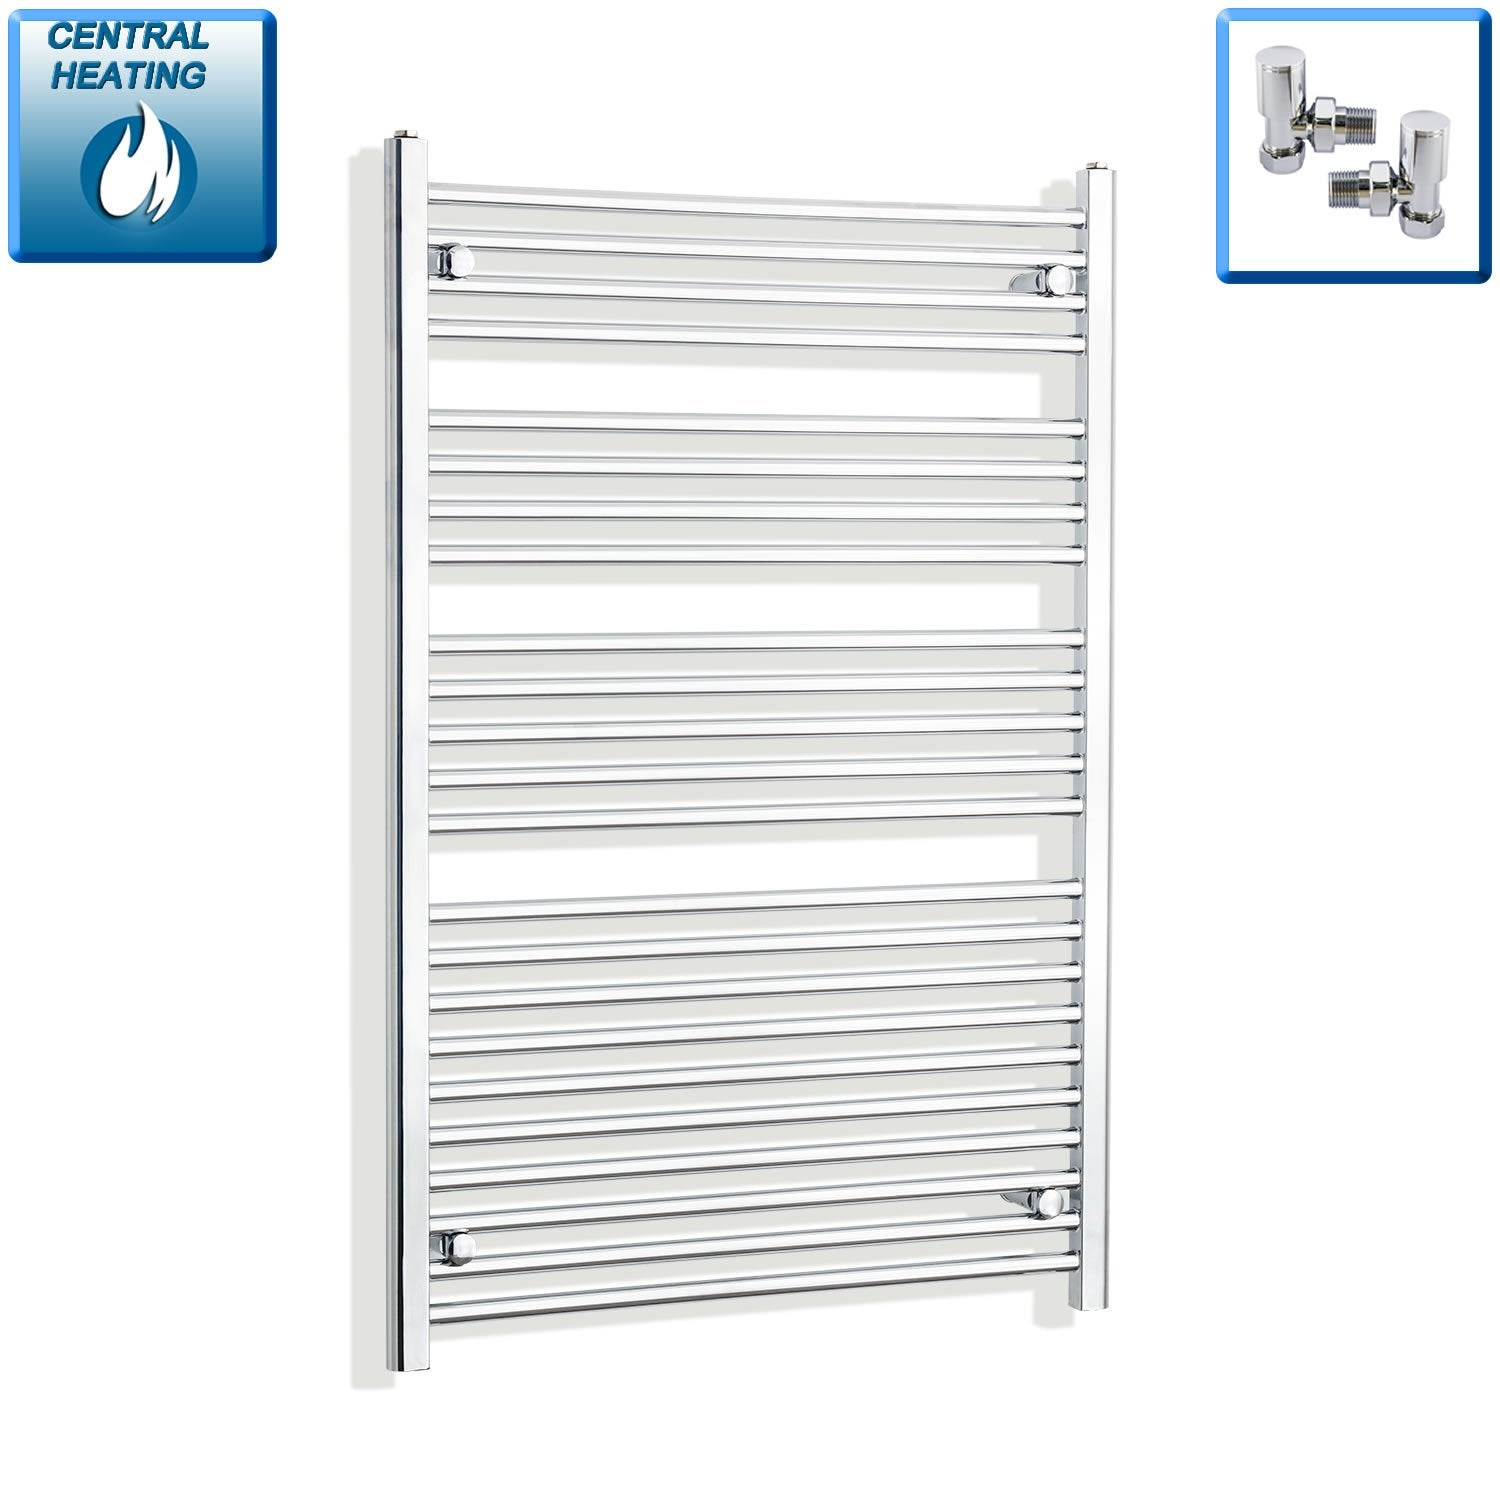 900mm Wide 1200mm High Flat Chrome Heated Towel Rail Radiator HTR,With Angled Valve